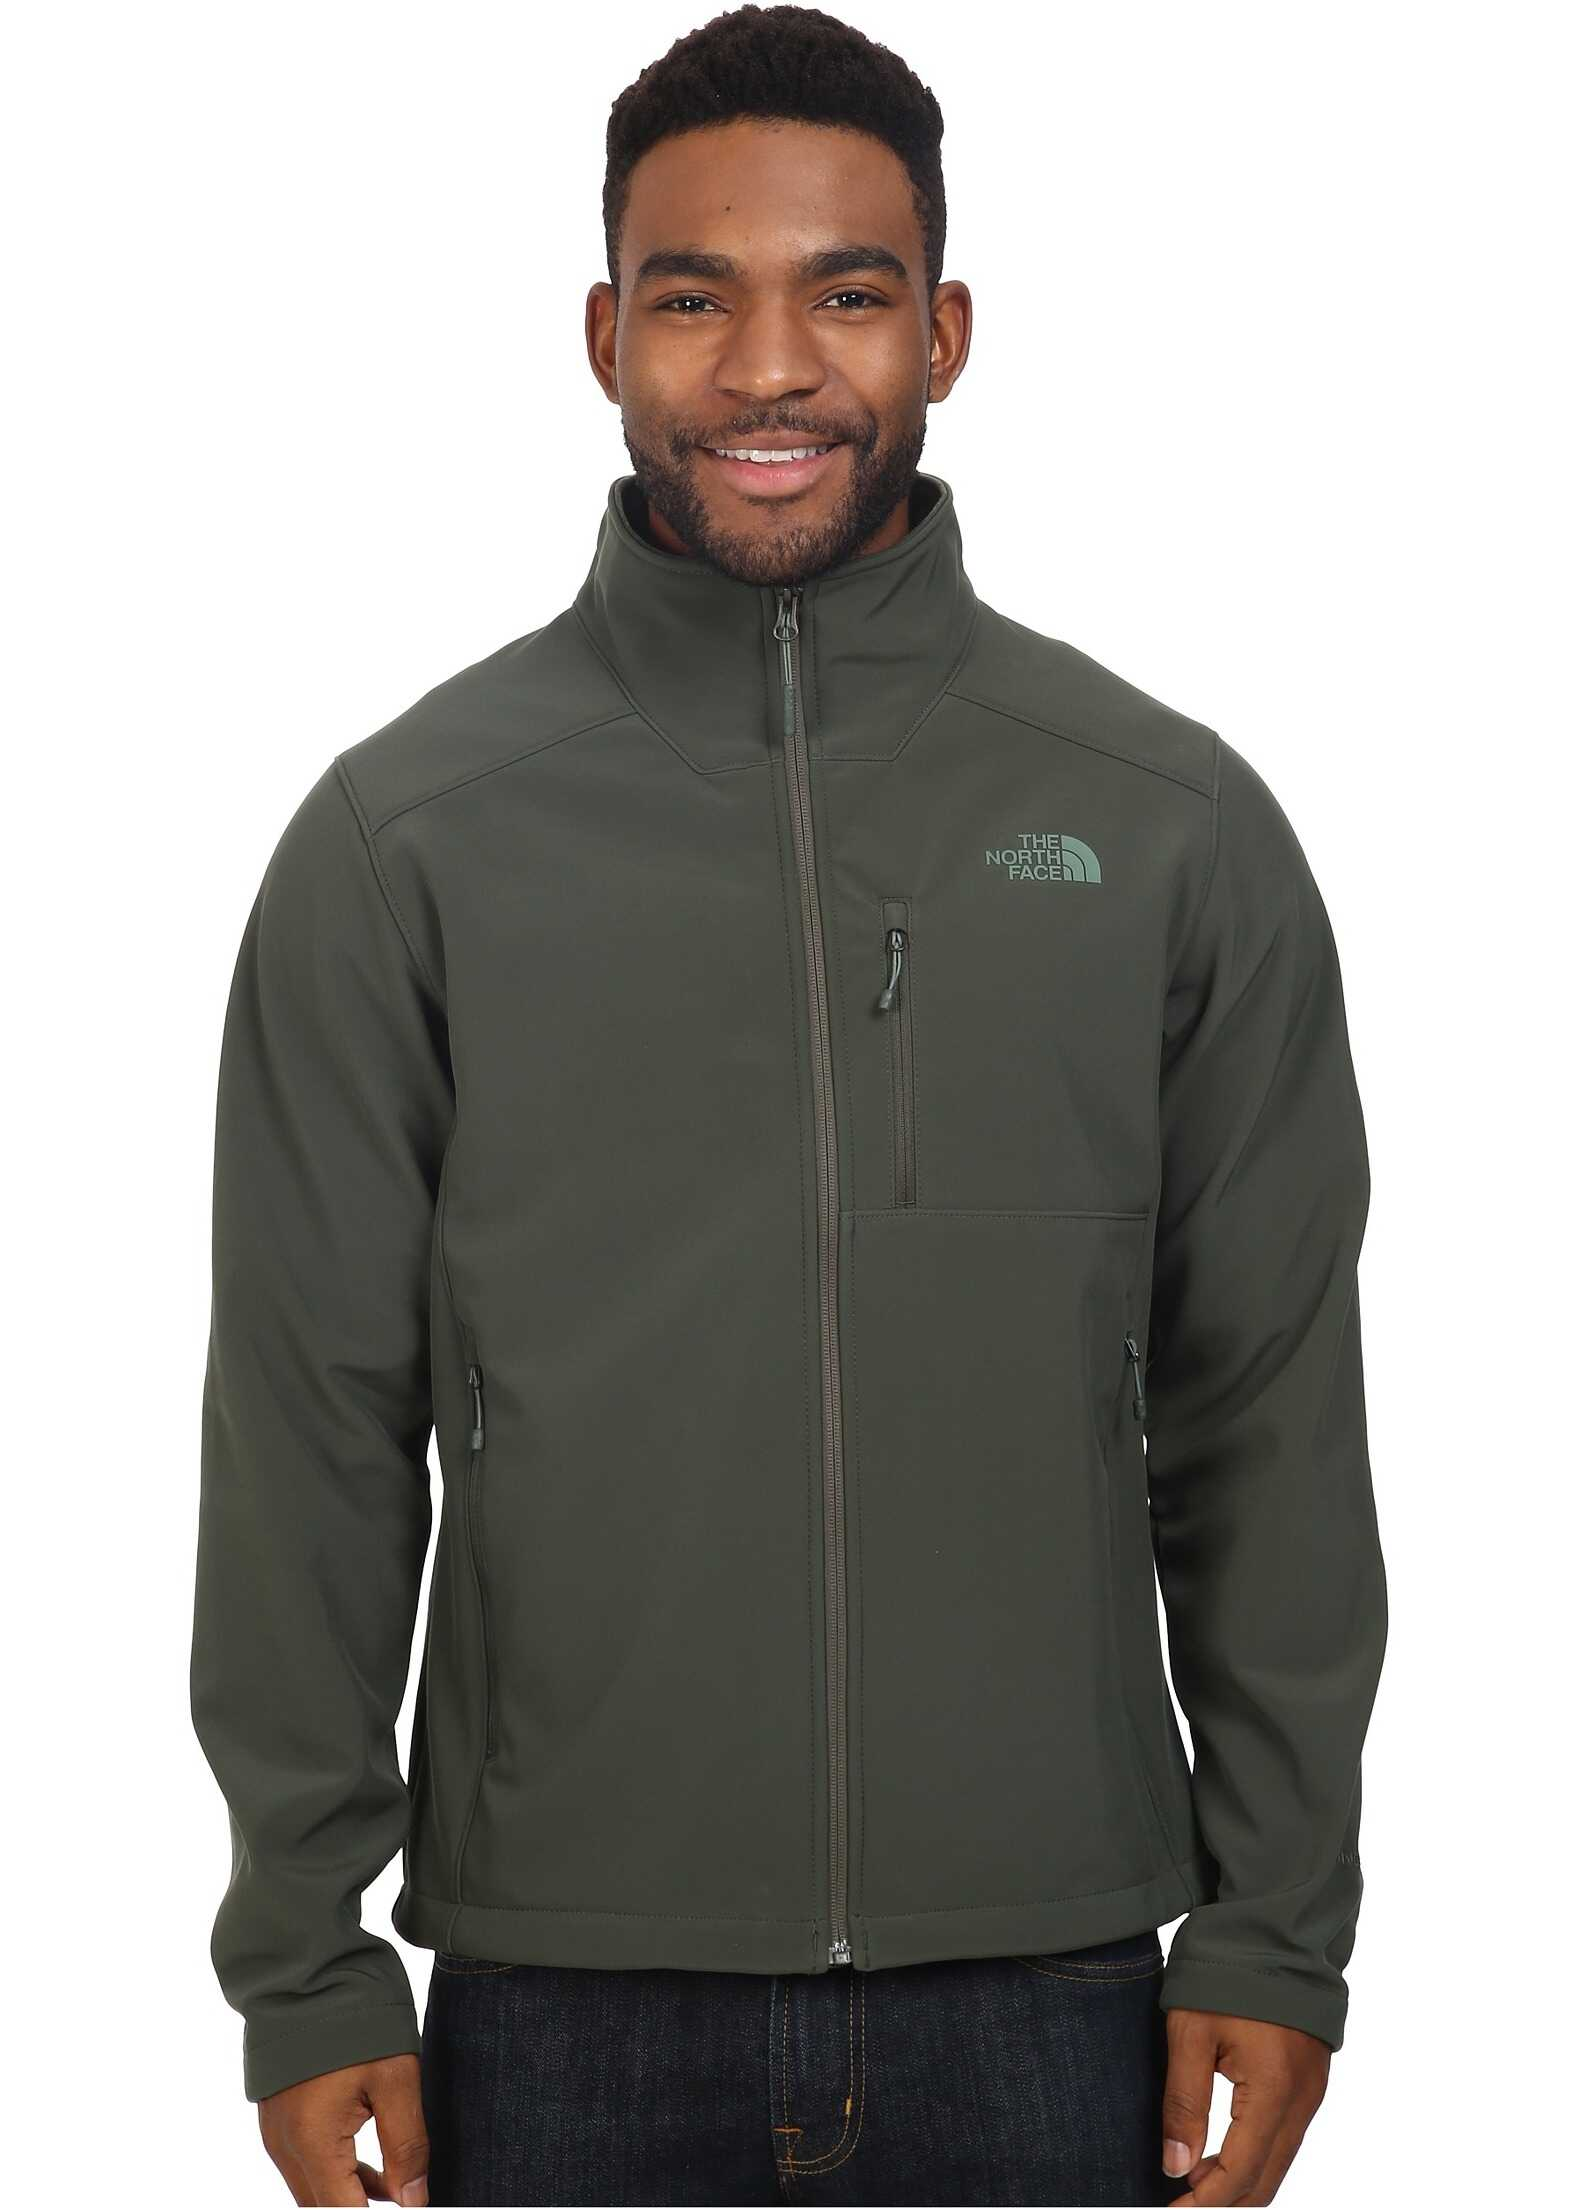 The North Face Apex Bionic 2 Jacket Climbing Ivy Green/Climbing Ivy Green (Prior Season)